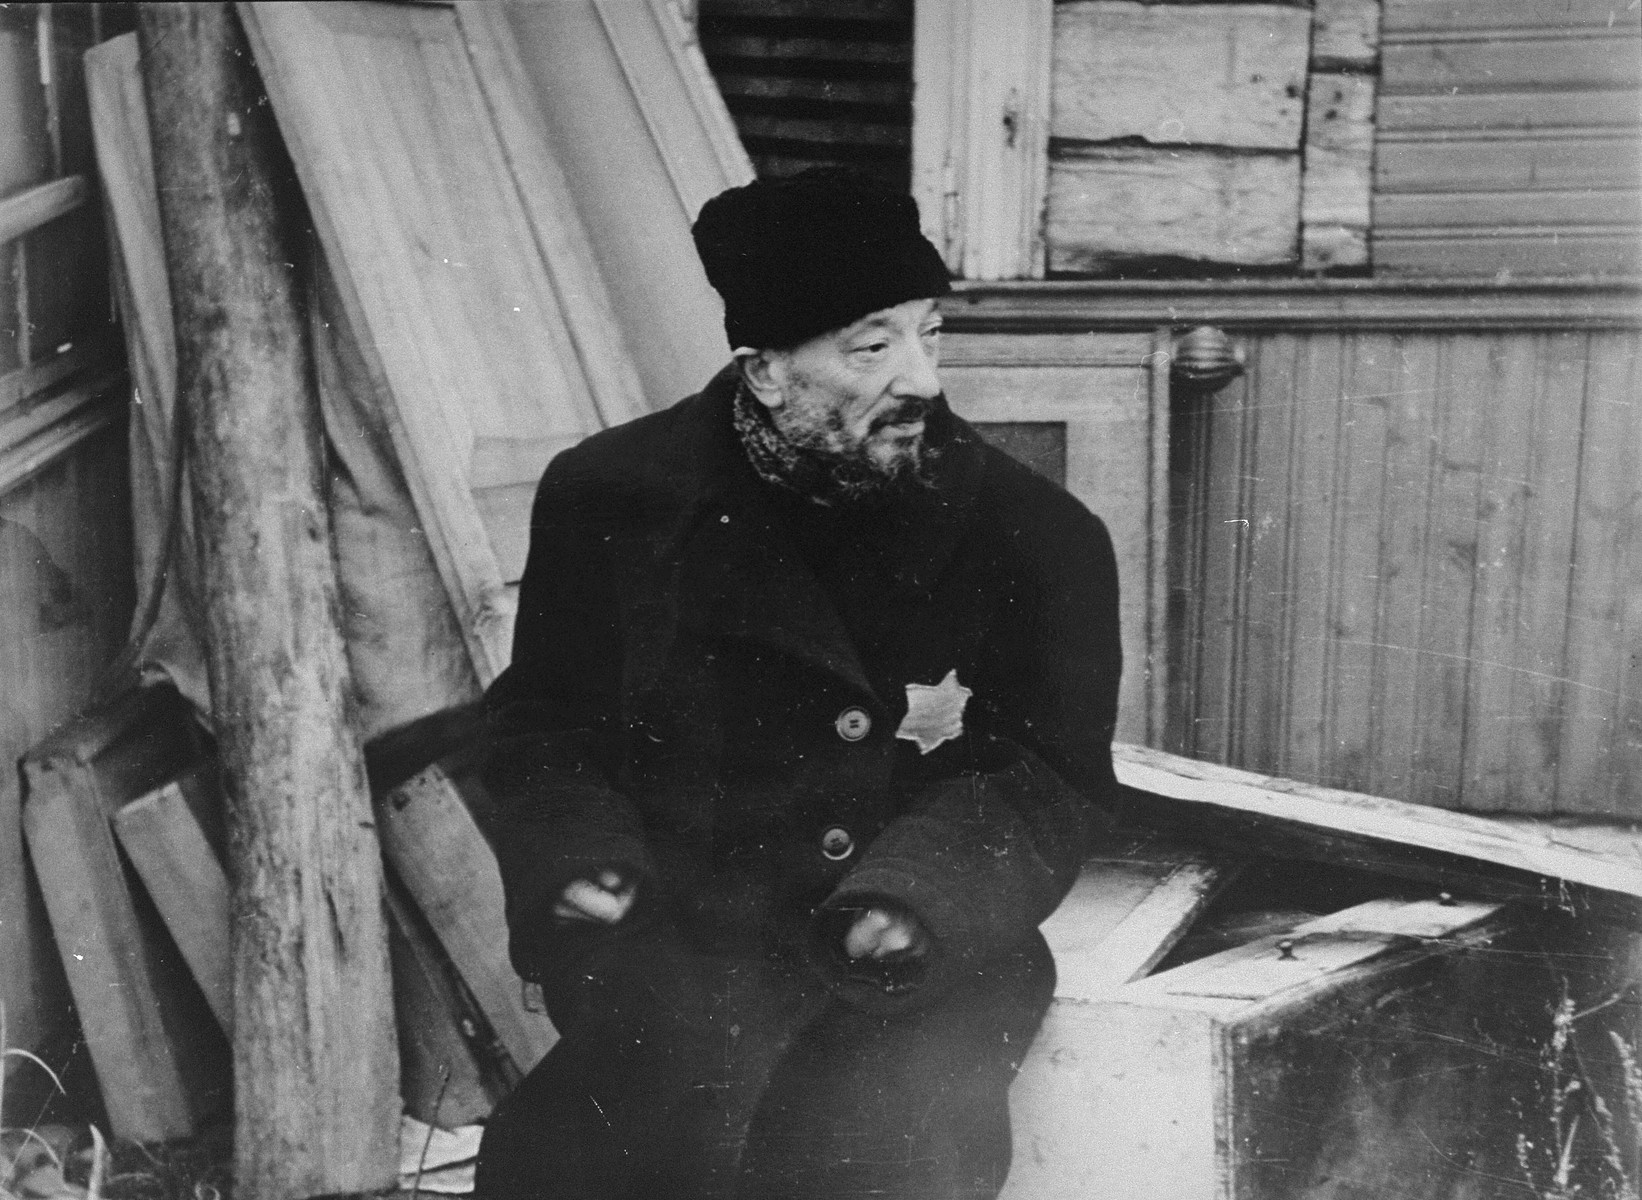 The preacher, Rabbi Most, sits outside his dwelling in the Kovno ghetto, where he awaits deportation.